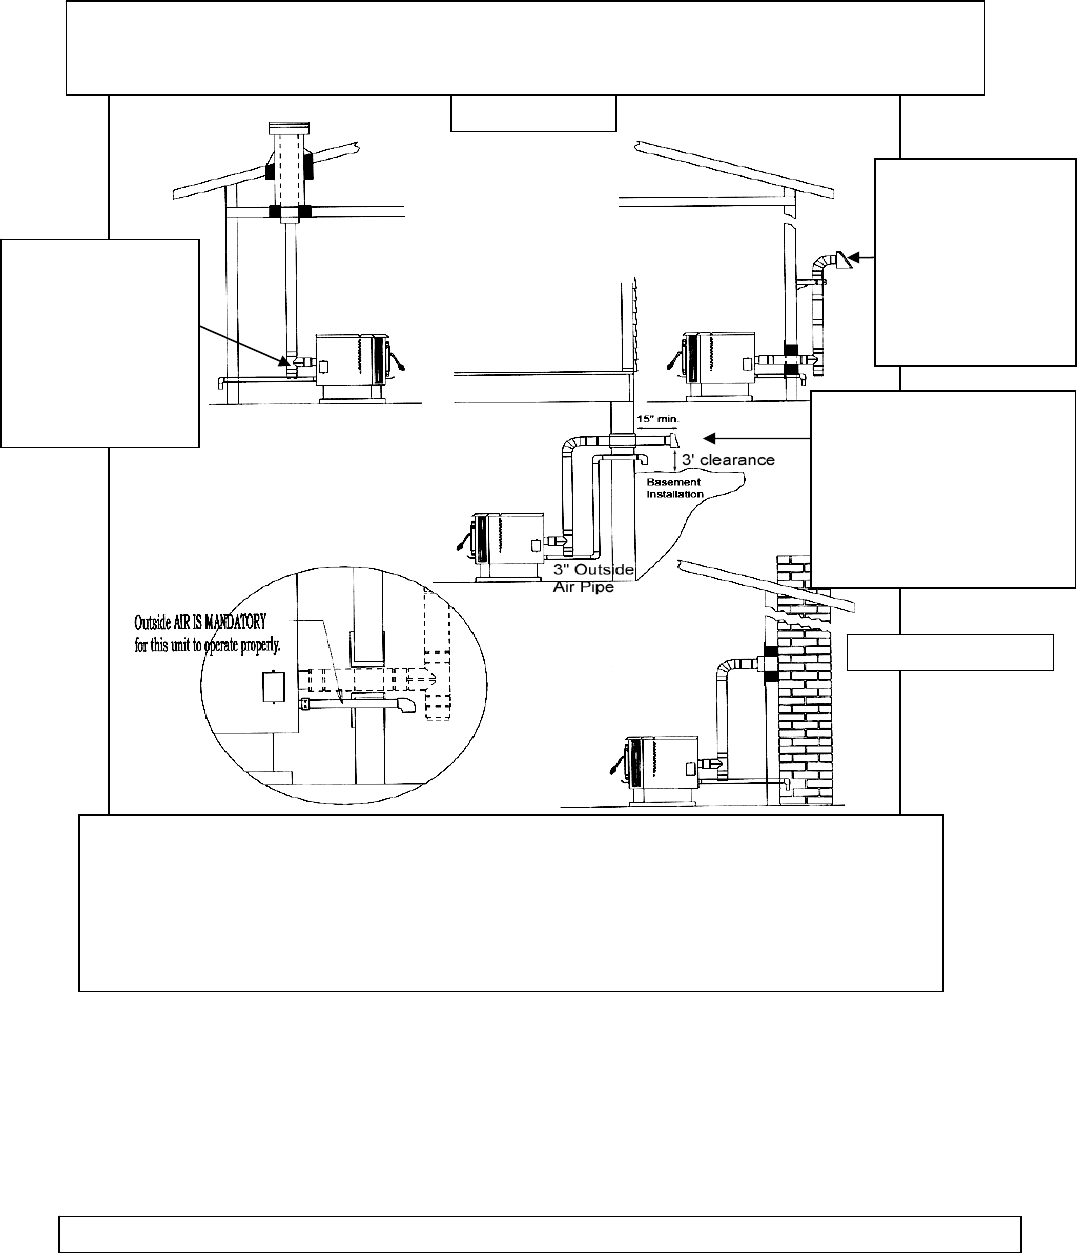 Englands Stove Works 25 Pdvc 55 Shp10 Or Trp10 Owners Manual Rocket Plumbing Diagram Read And Follow All Installation Maintenance Instructions Including